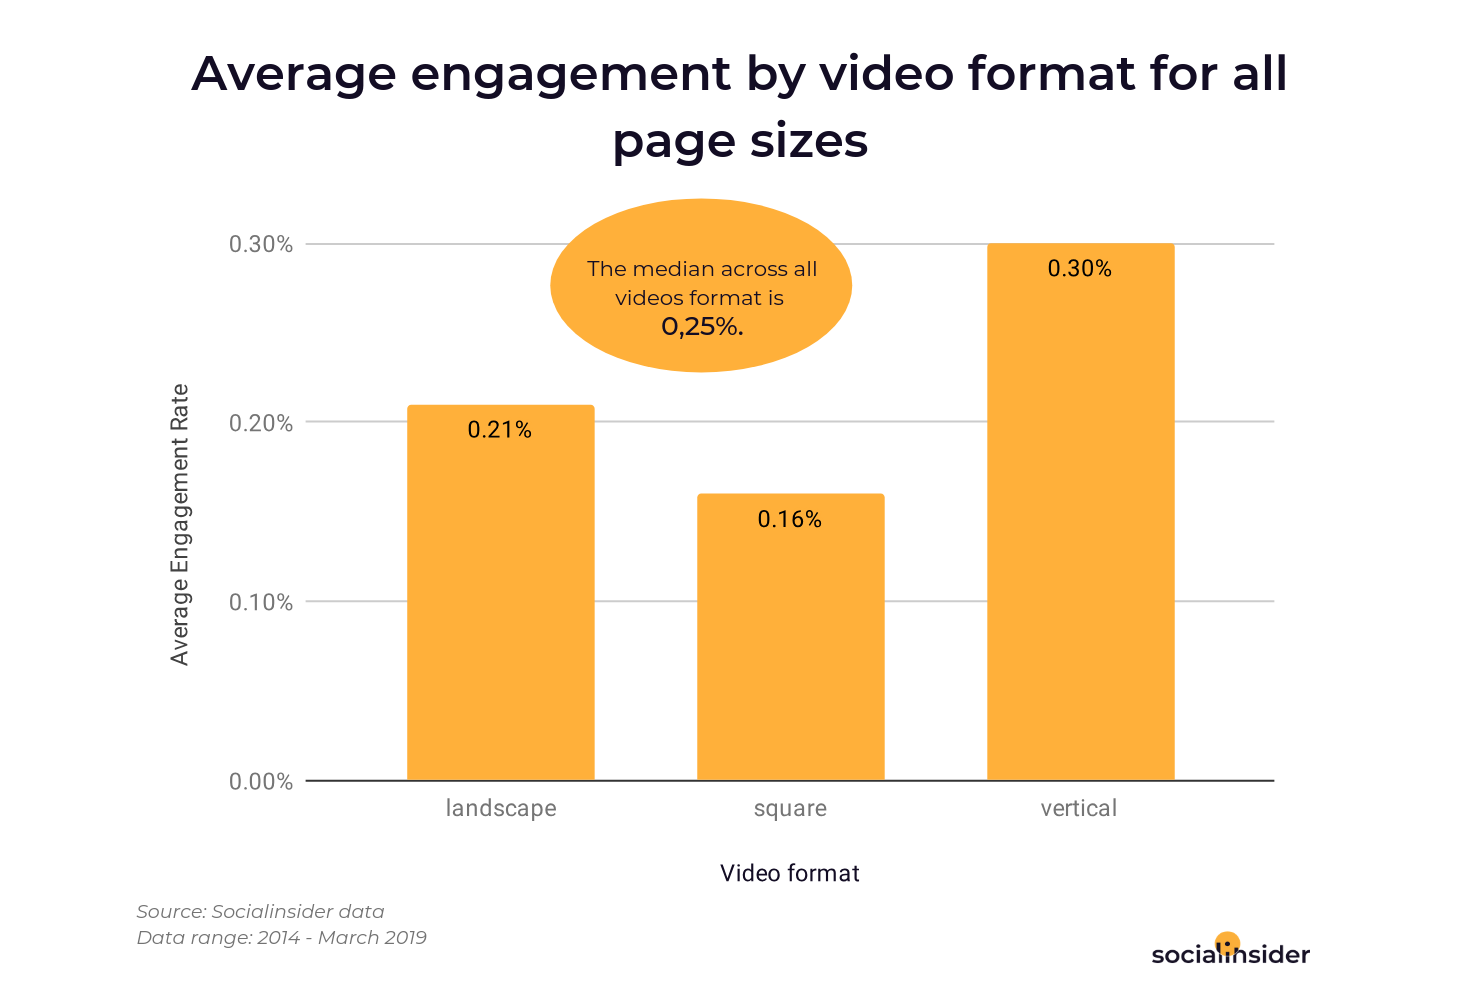 Average engagement by video format for all page sizes